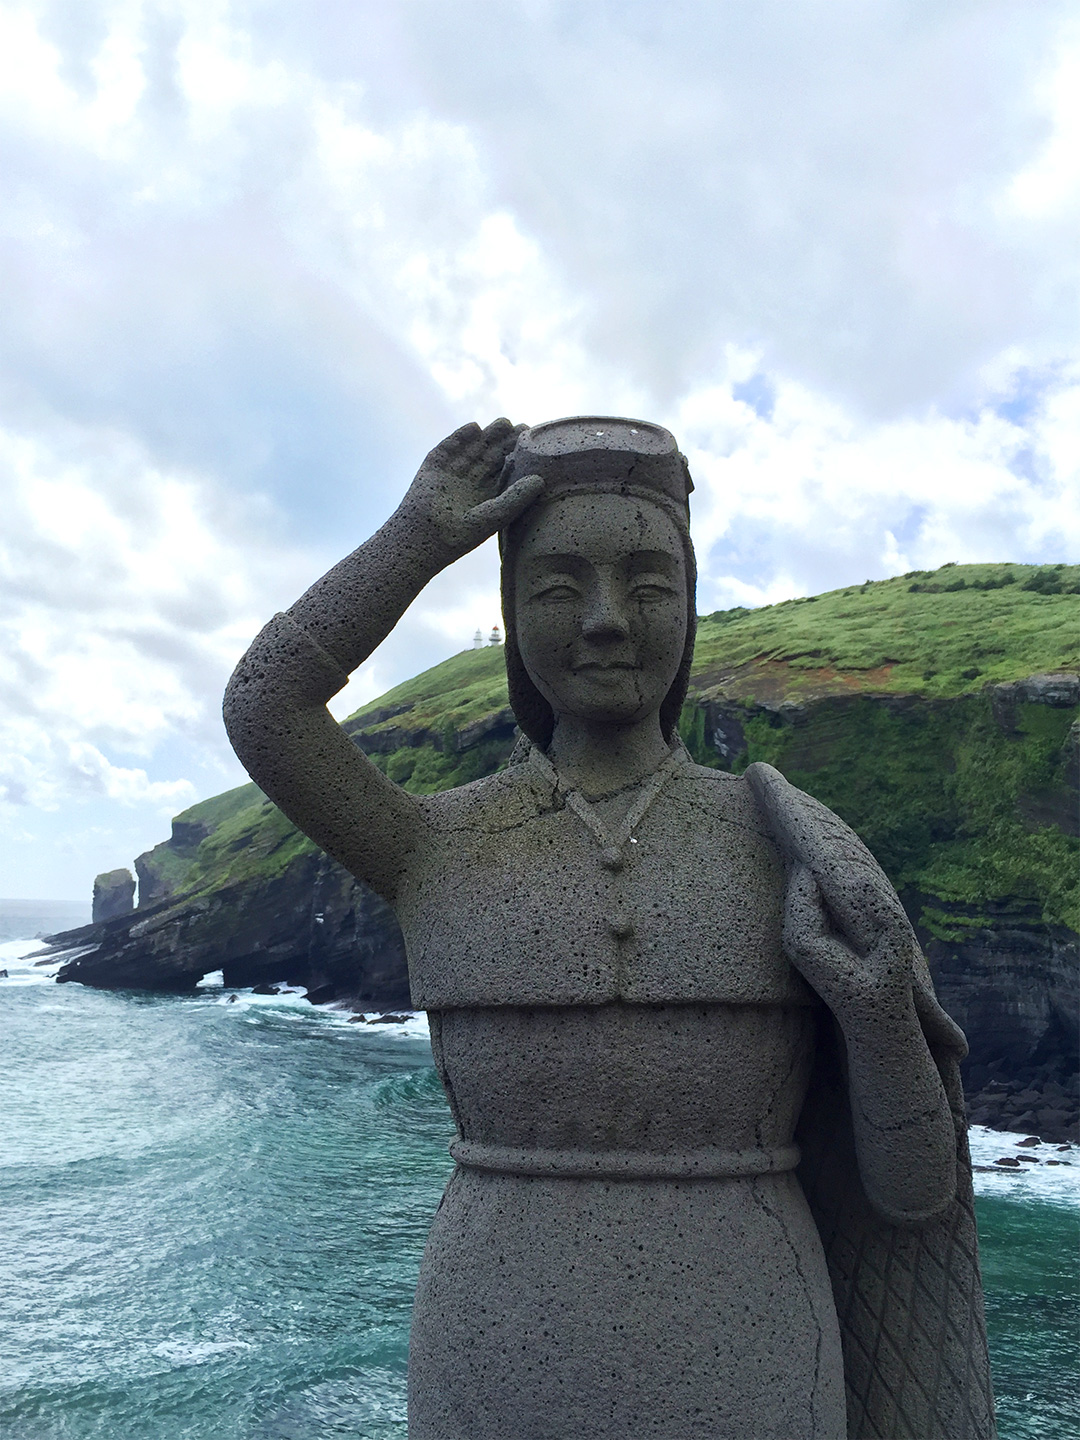 """The haenyeo """"sea woman""""is an icon of Jejudo Island. These female divers have been diving for seafood for centuries and represent the matriarchal society that has developed on the island."""